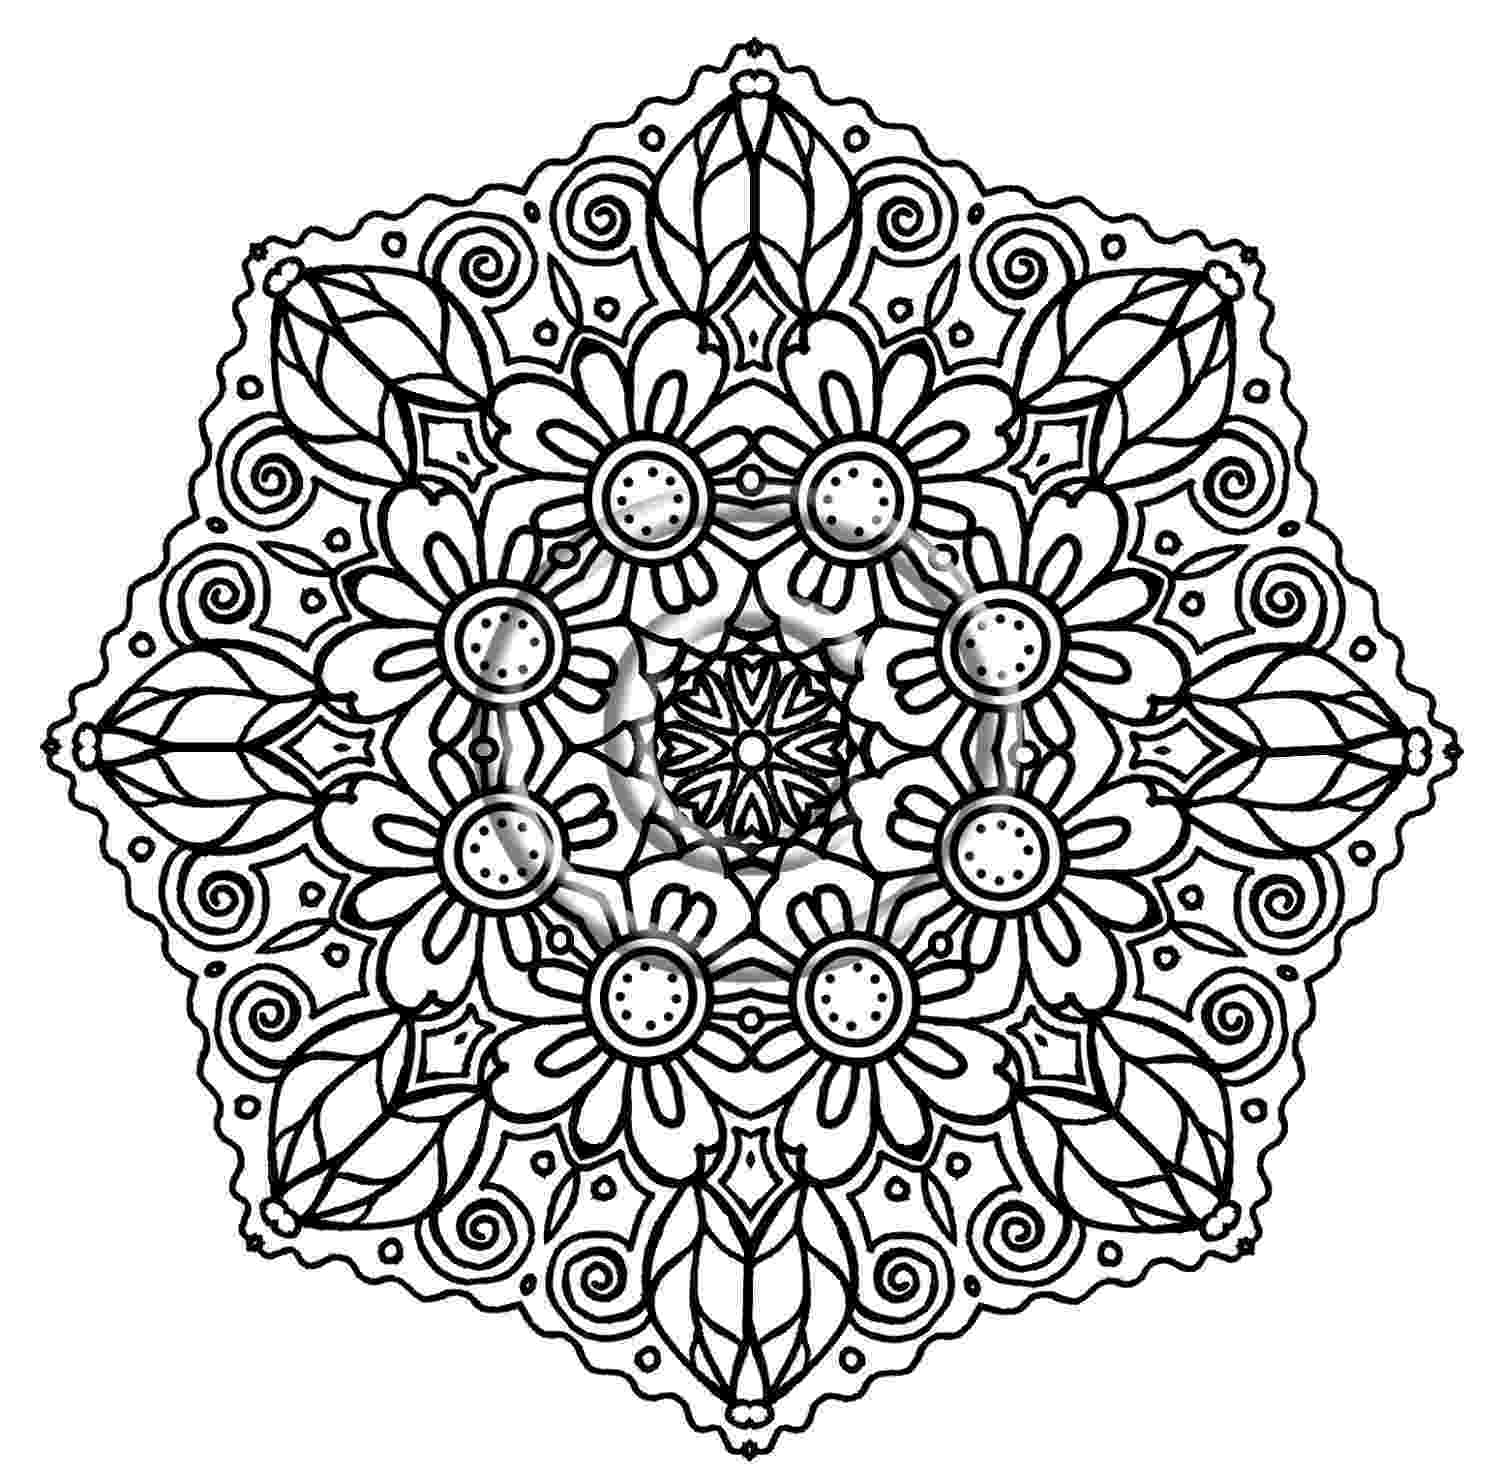 flower coloring patterns flower pattern coloring page free printable coloring pages flower patterns coloring